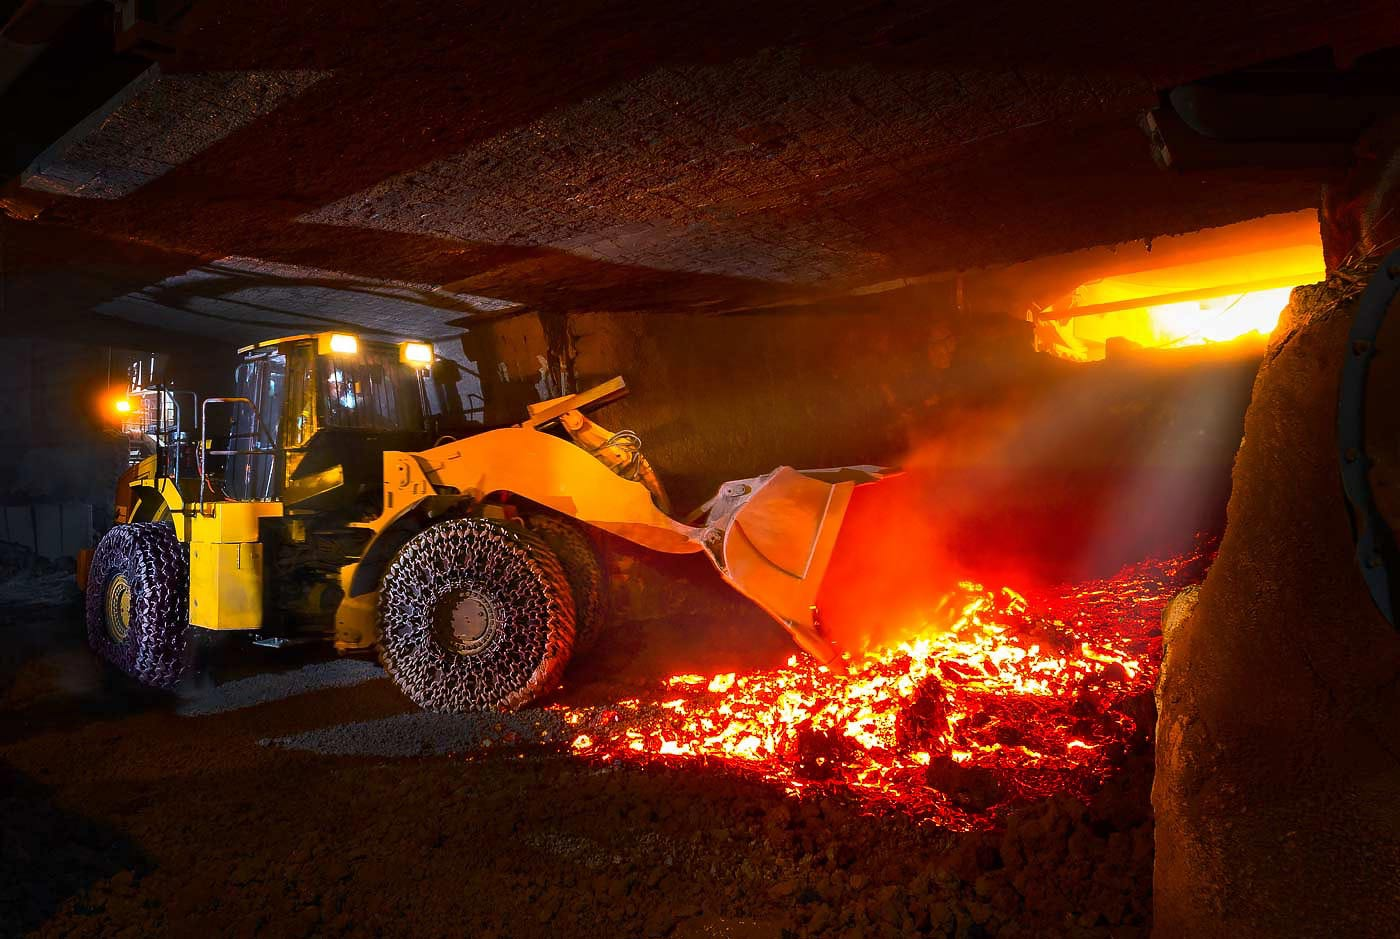 Loader clearing slag from furnace - yellow metal annual report photography portfolio